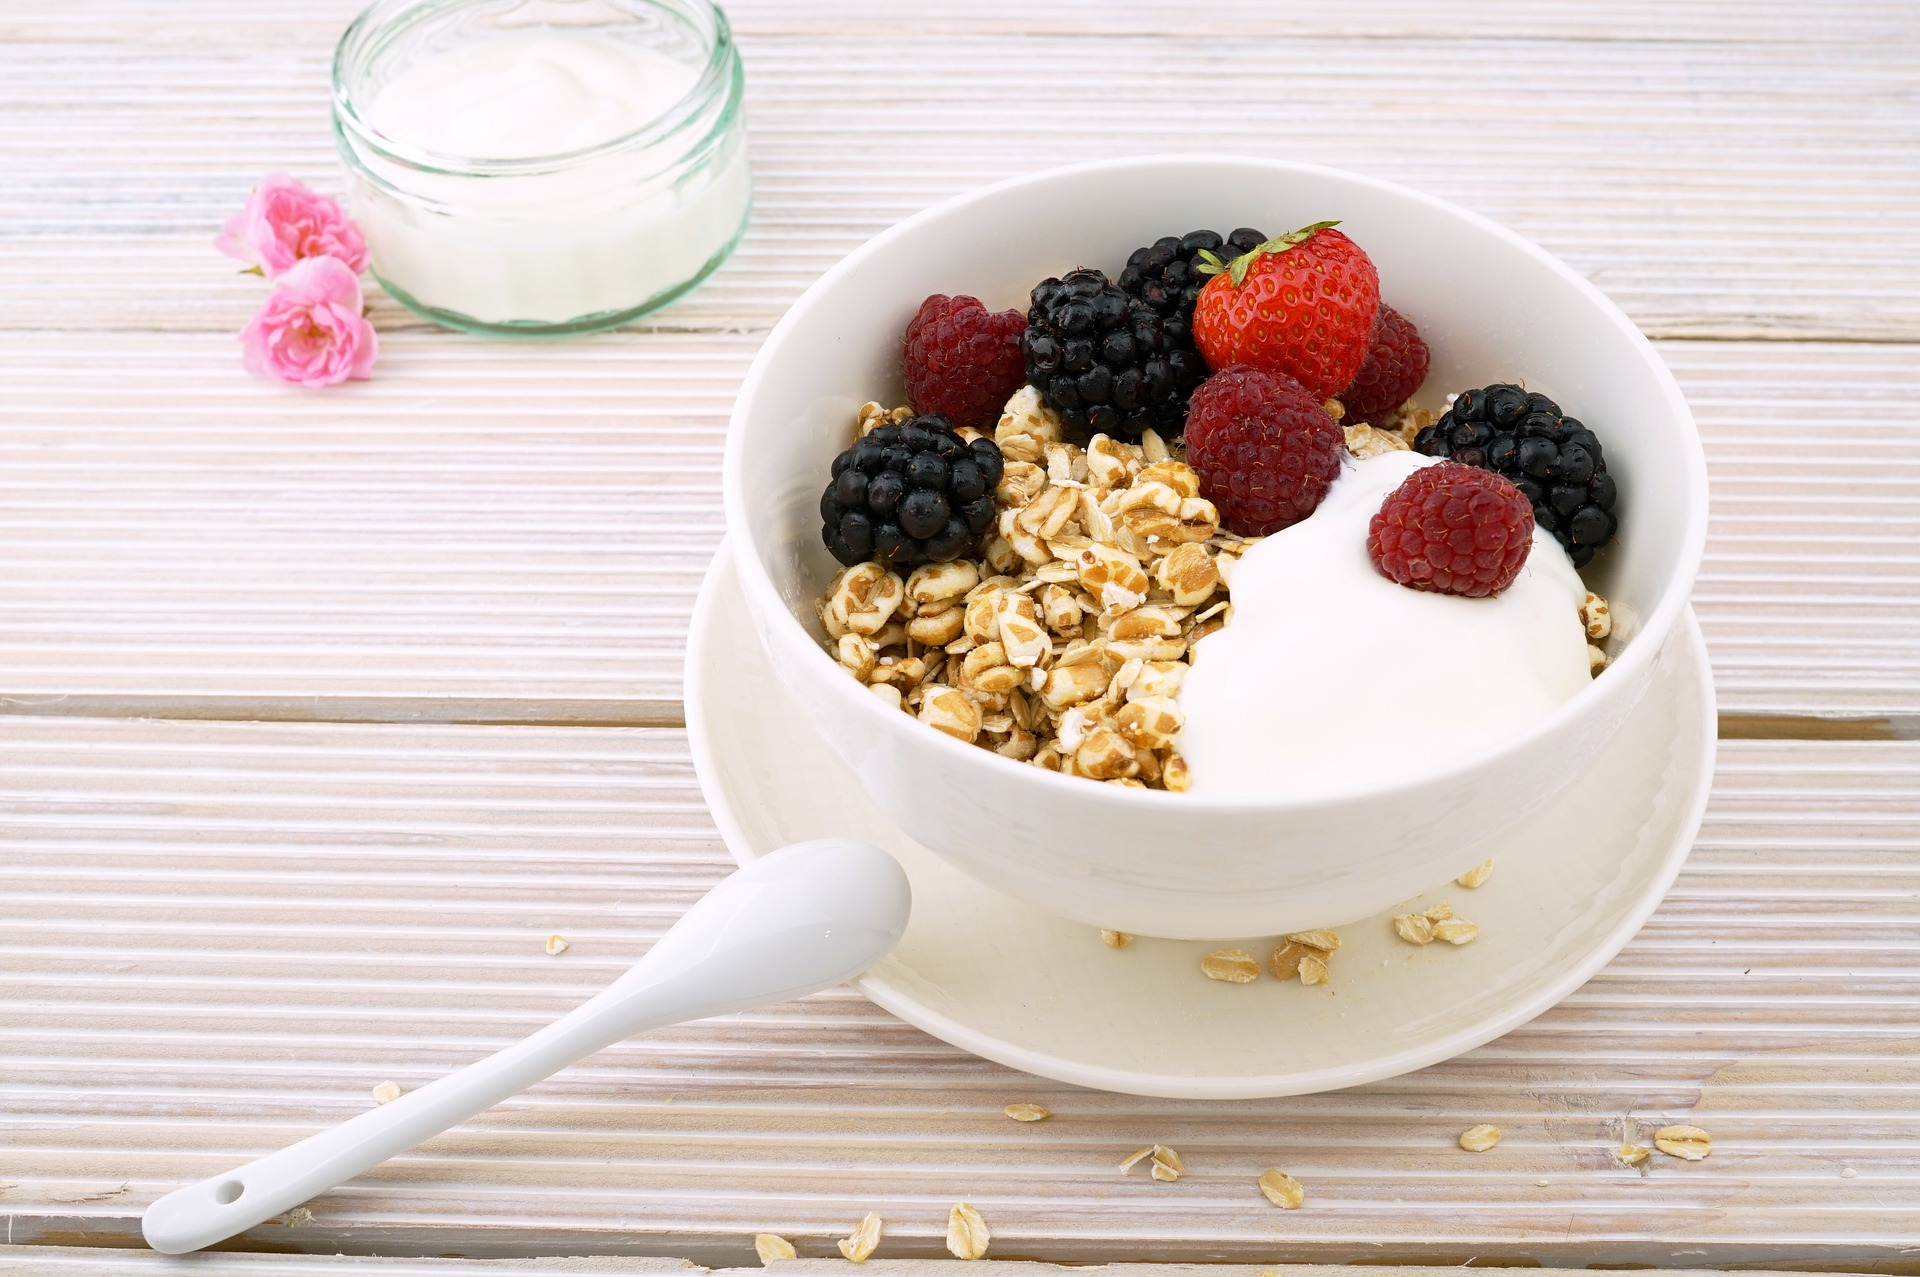 Homemade breakfast: granola with yoghurt